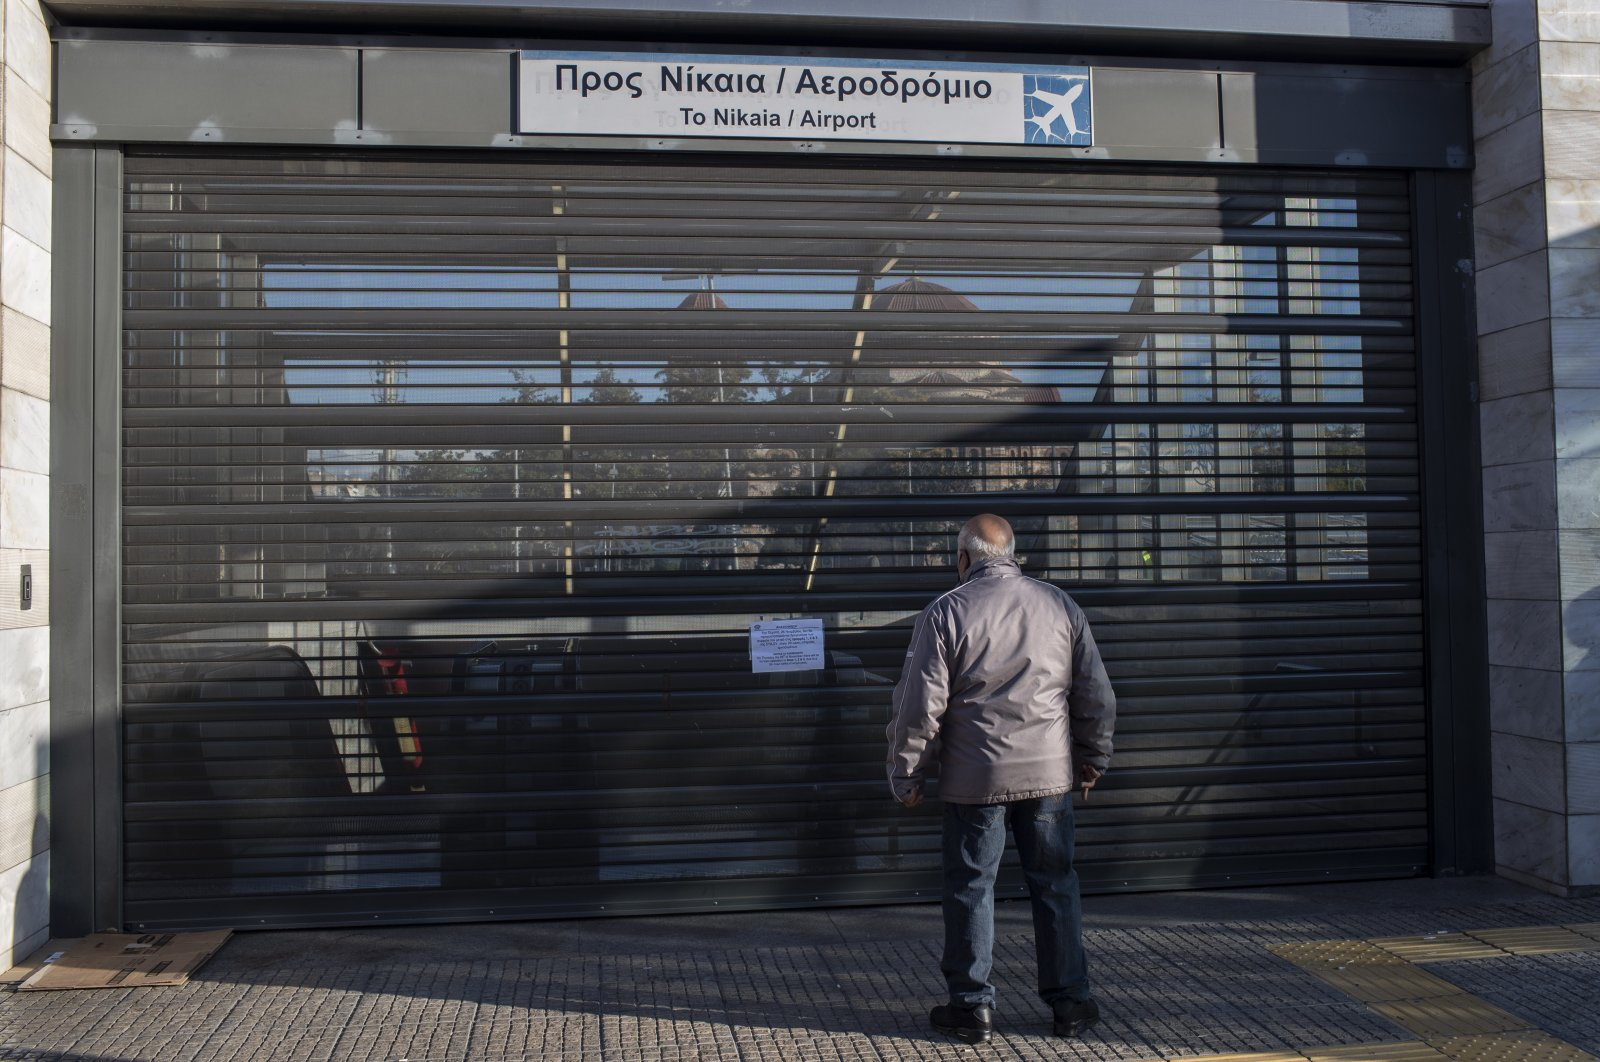 A man looks through the shuttered entrance of a metro station in the Egaleo suburb of Athens during a 24-hour strike, Nov. 26, 2020. (AP Photo)